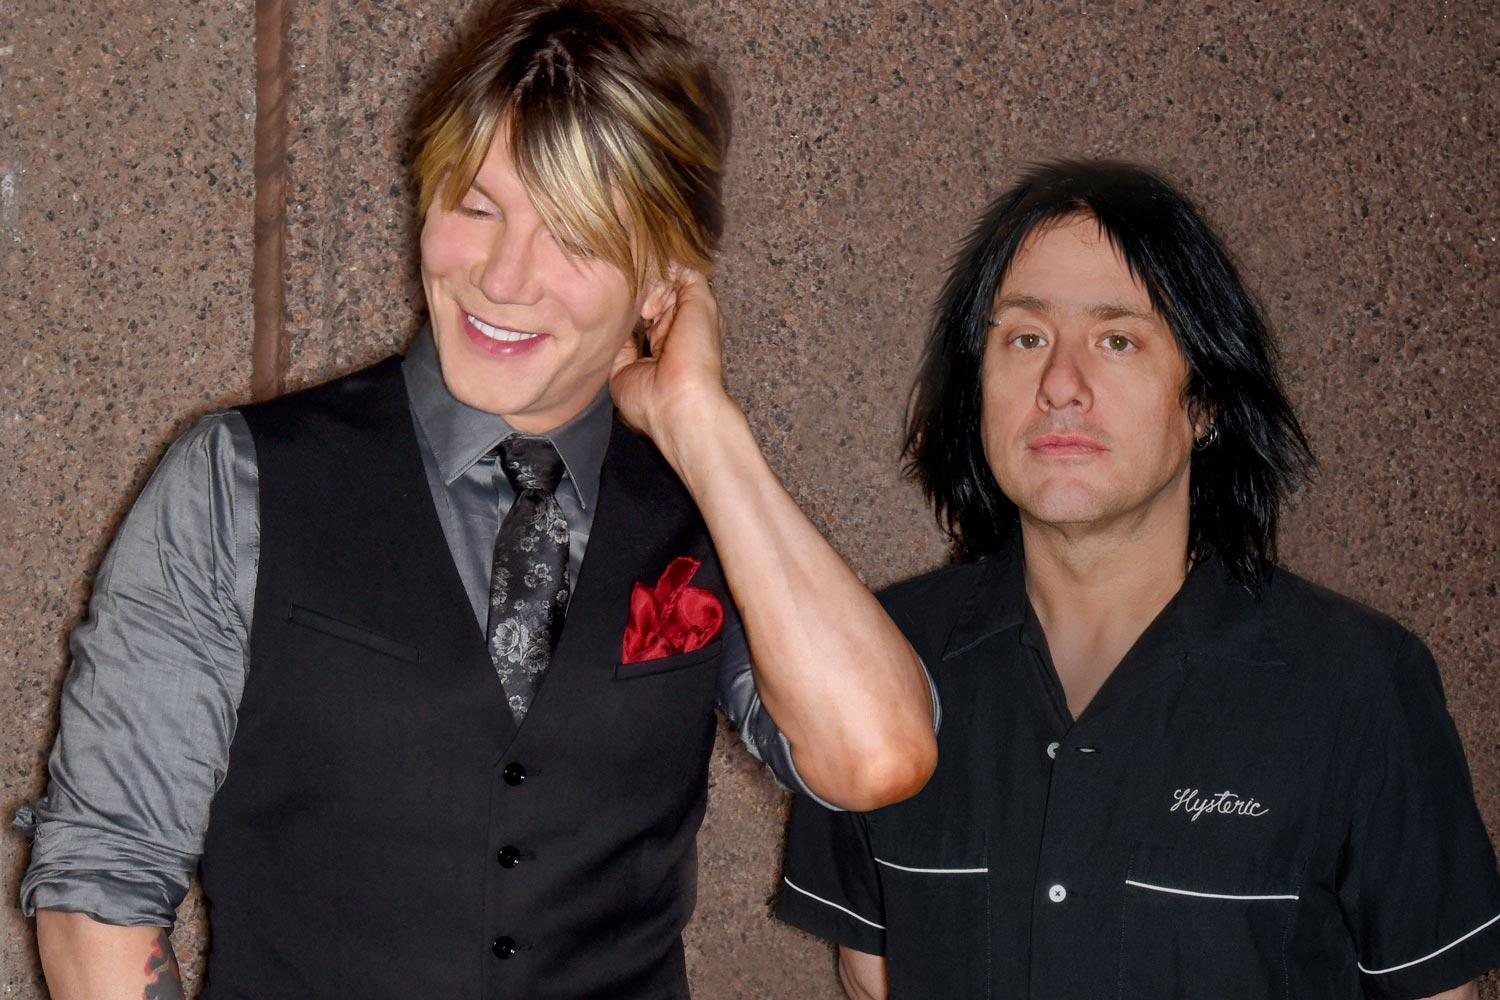 Guitarist and vocalist John Rzeznik, left, and bassist Robby Takac of The Goo Goo Dolls will perform after UVA's Bicentennial Launch Celebration on Friday. (Photo courtesy of the Goo Goo Dolls)